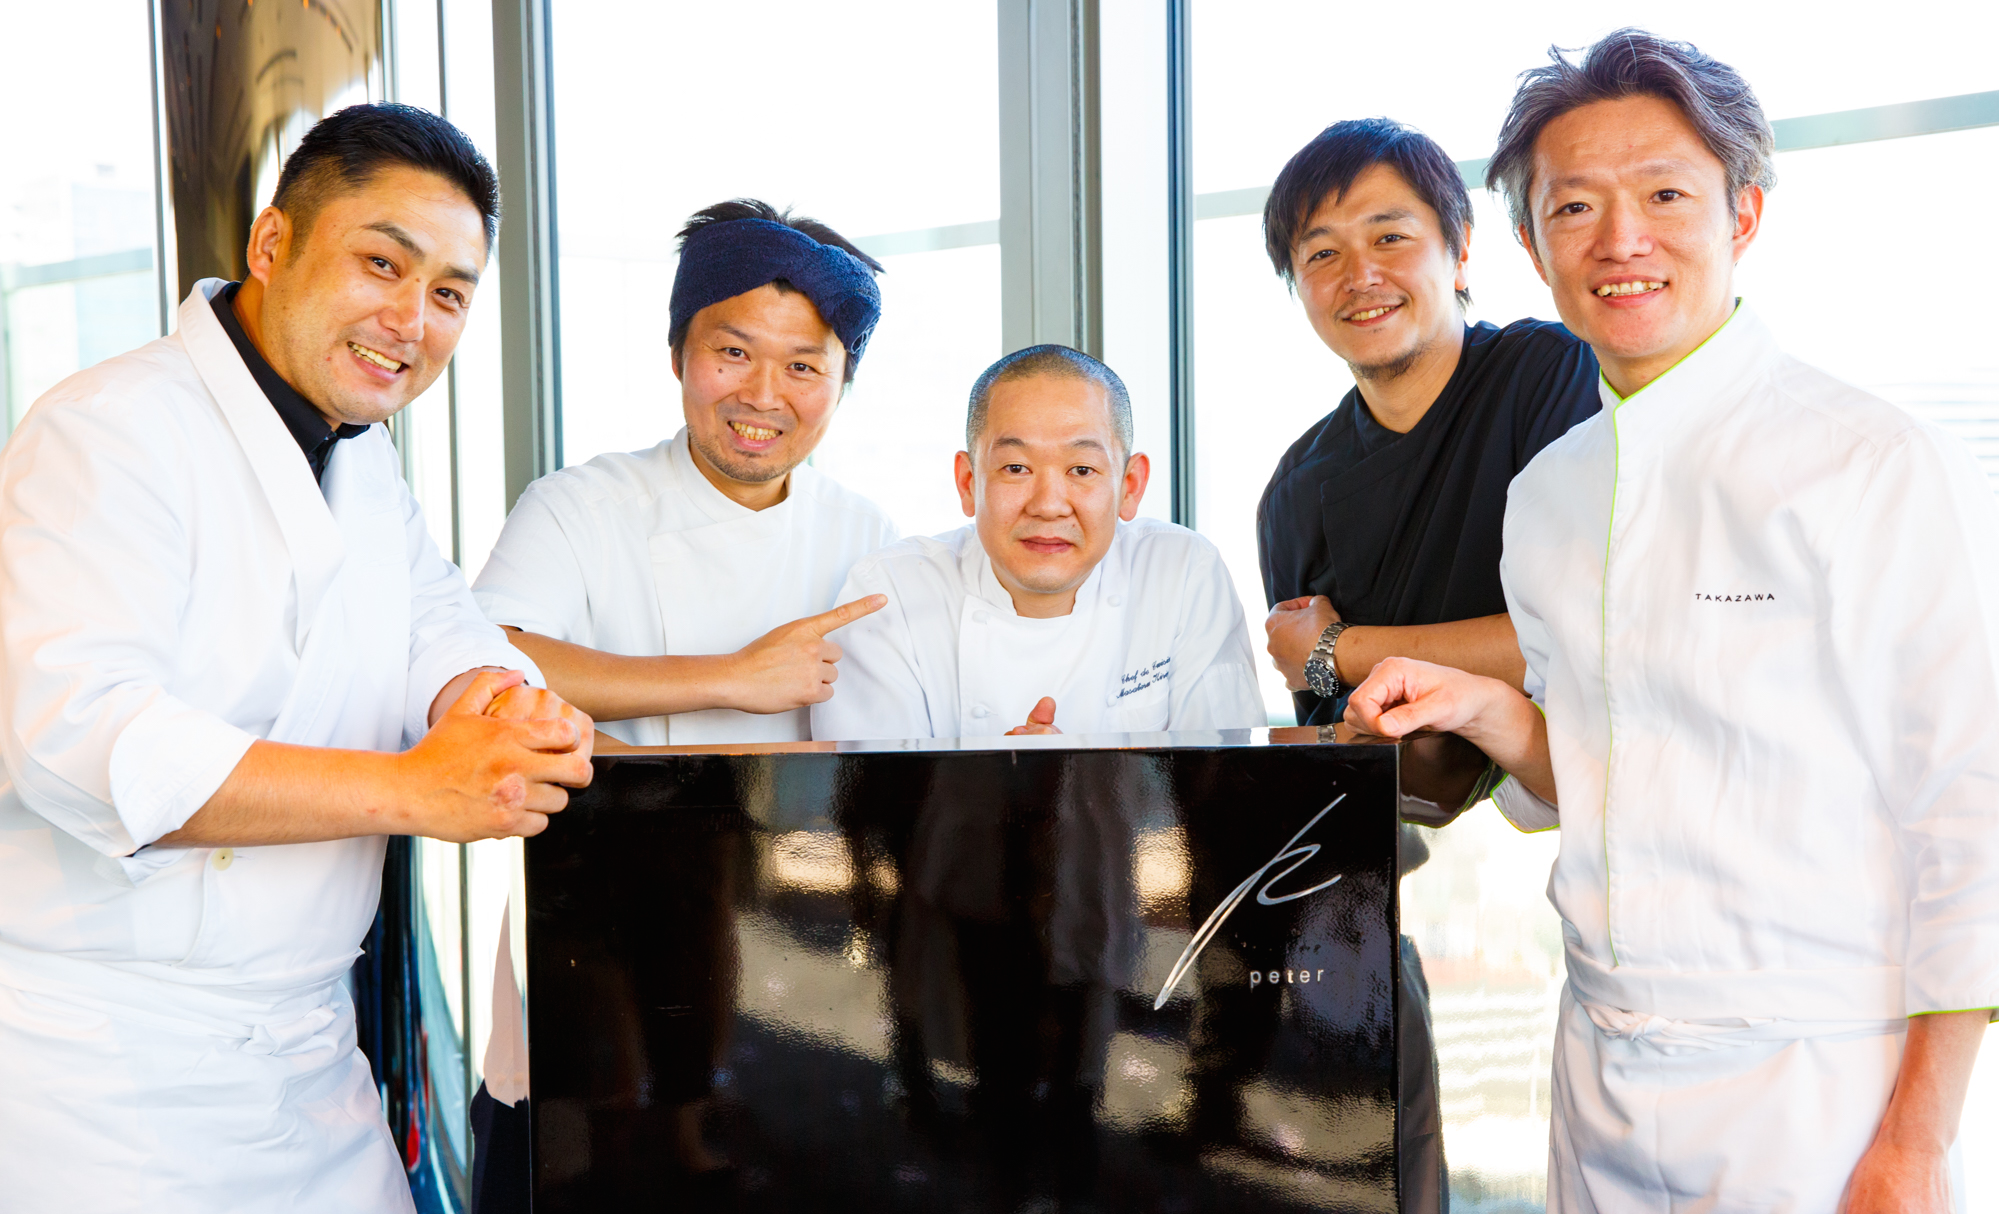 Peter X Artisan Chefs of Japan